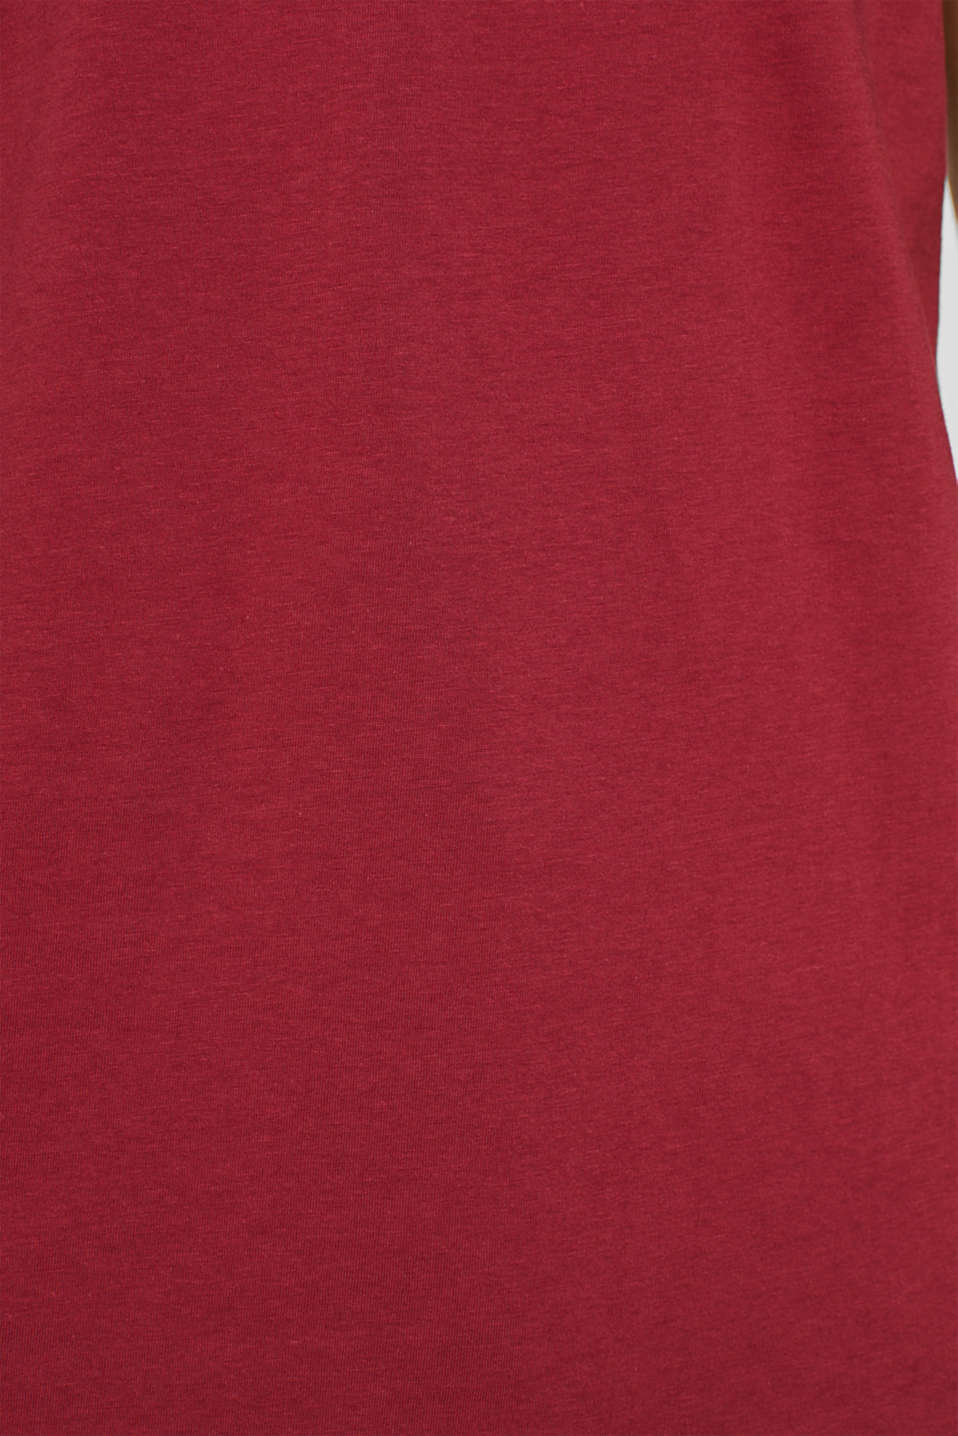 Jersey T-shirt in 100% cotton, BORDEAUX RED 2, detail image number 4